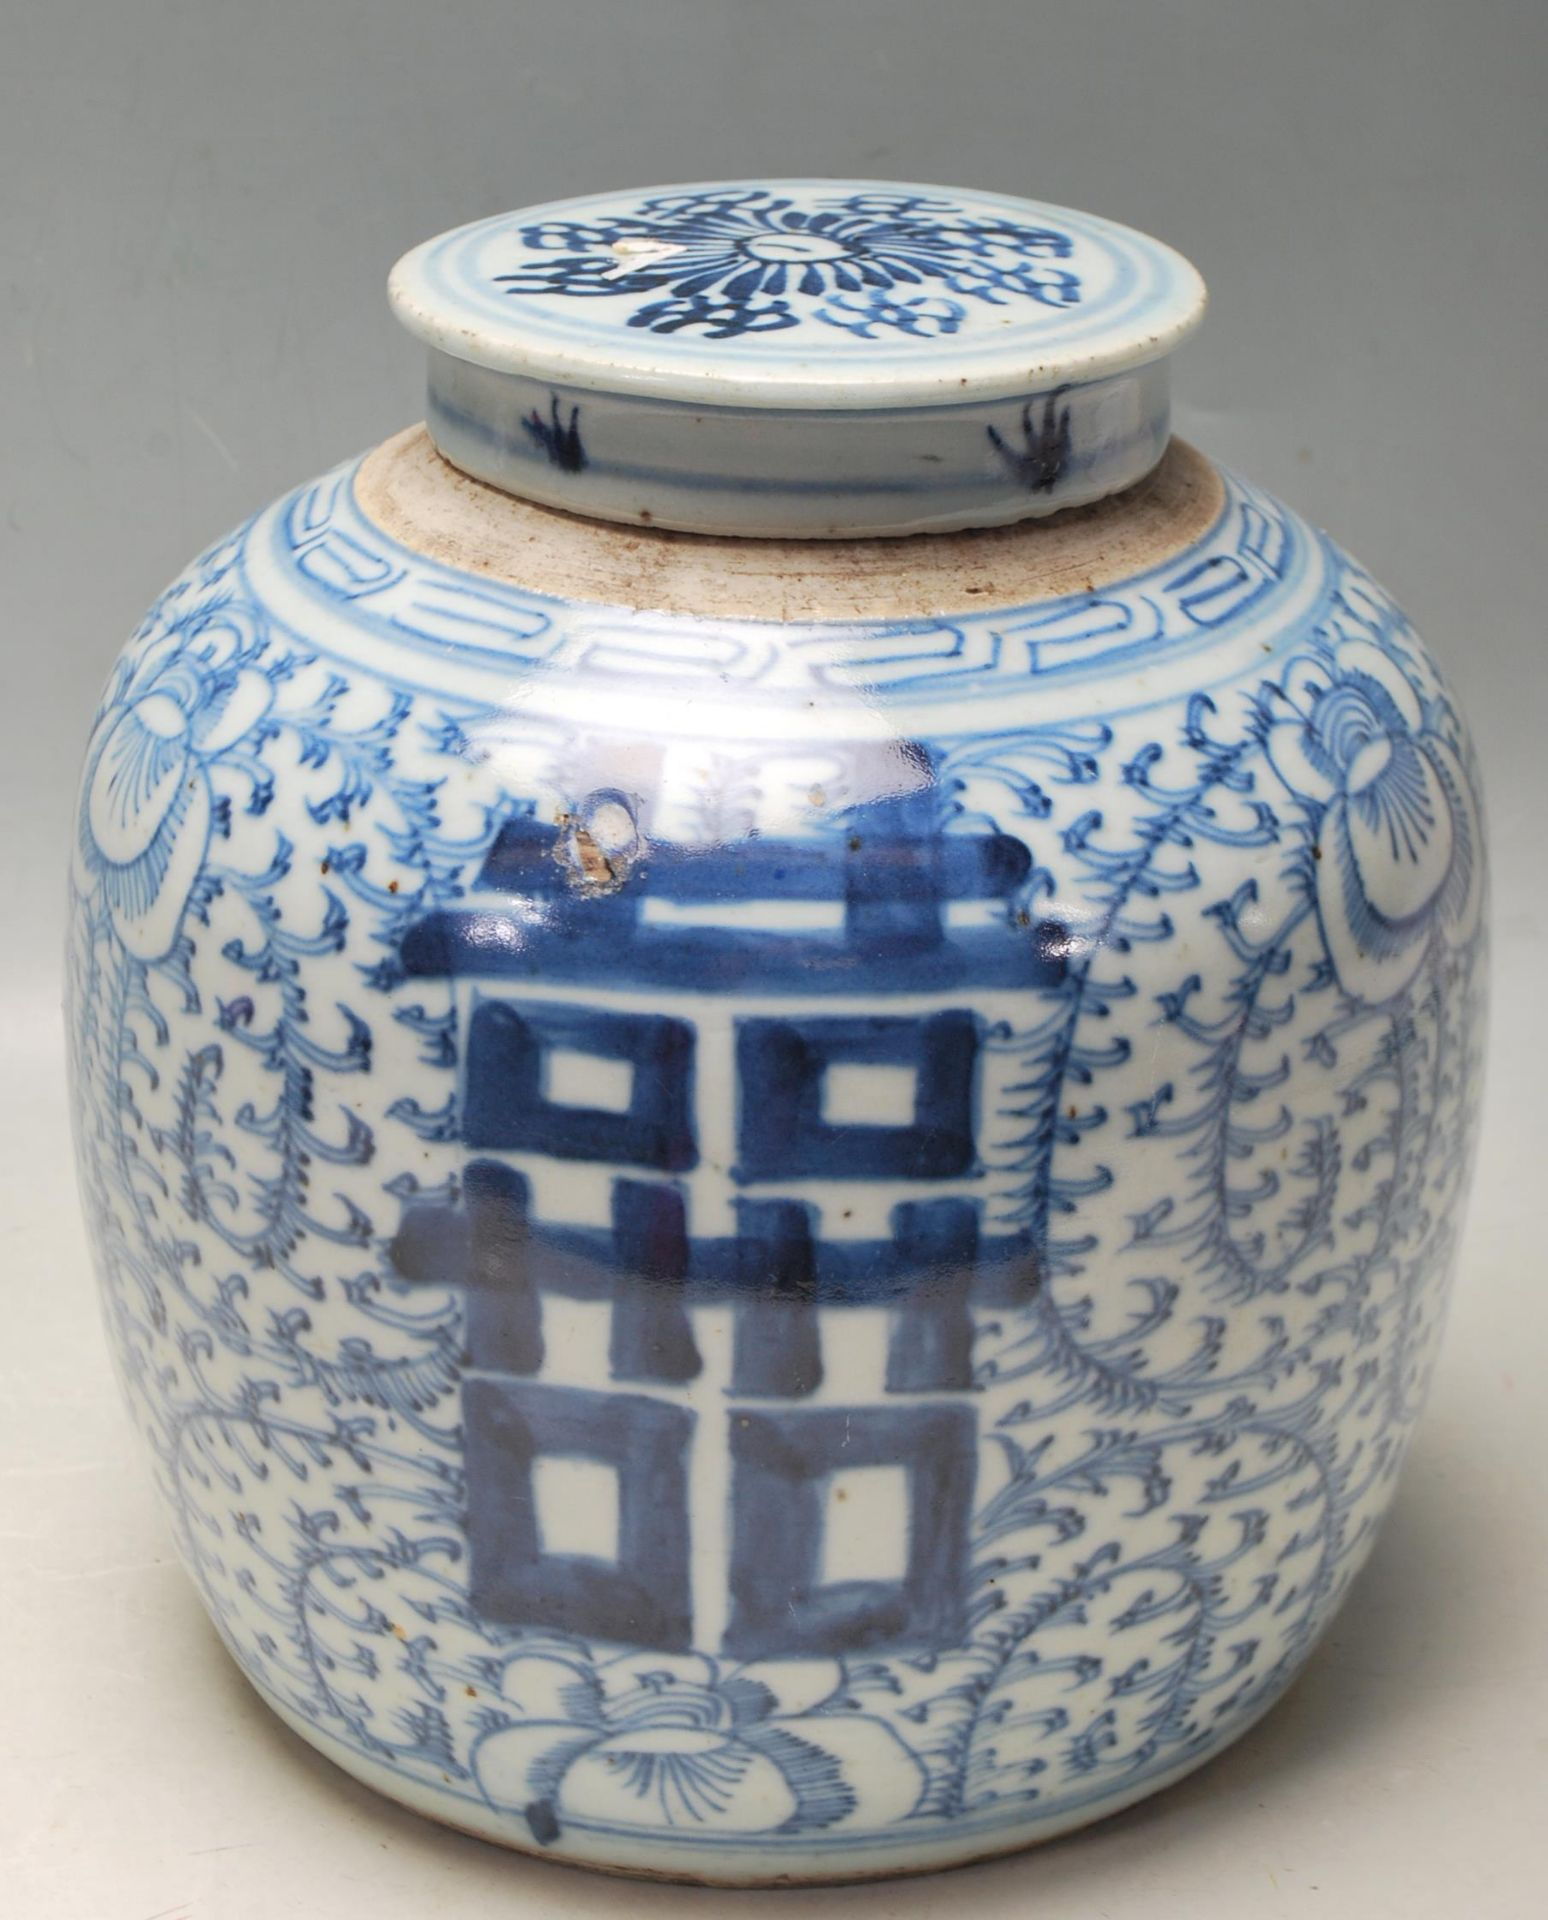 LATE 19TH CENTURY KANGXI CHINESE BLUE AND WHITE VASE - Image 5 of 9